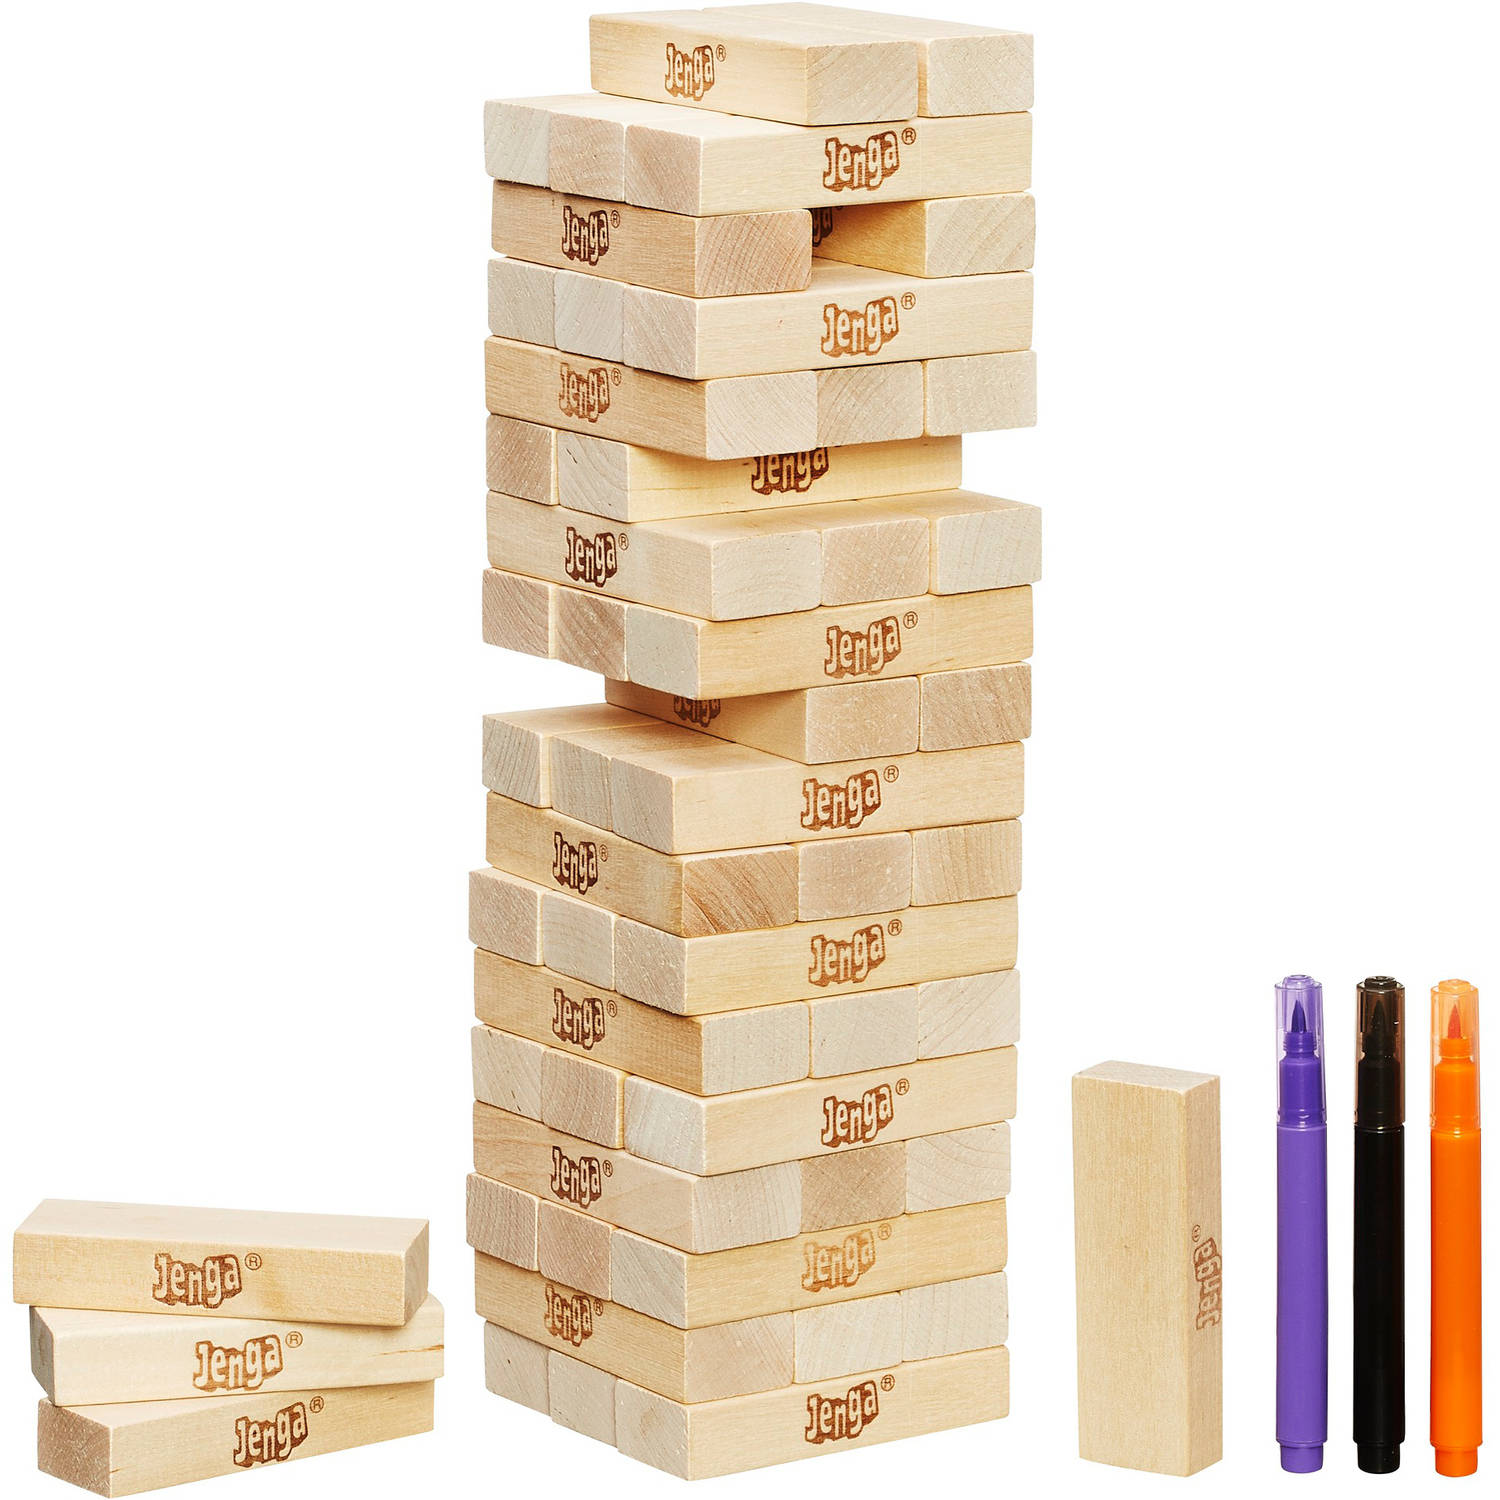 jenga rules and instructions